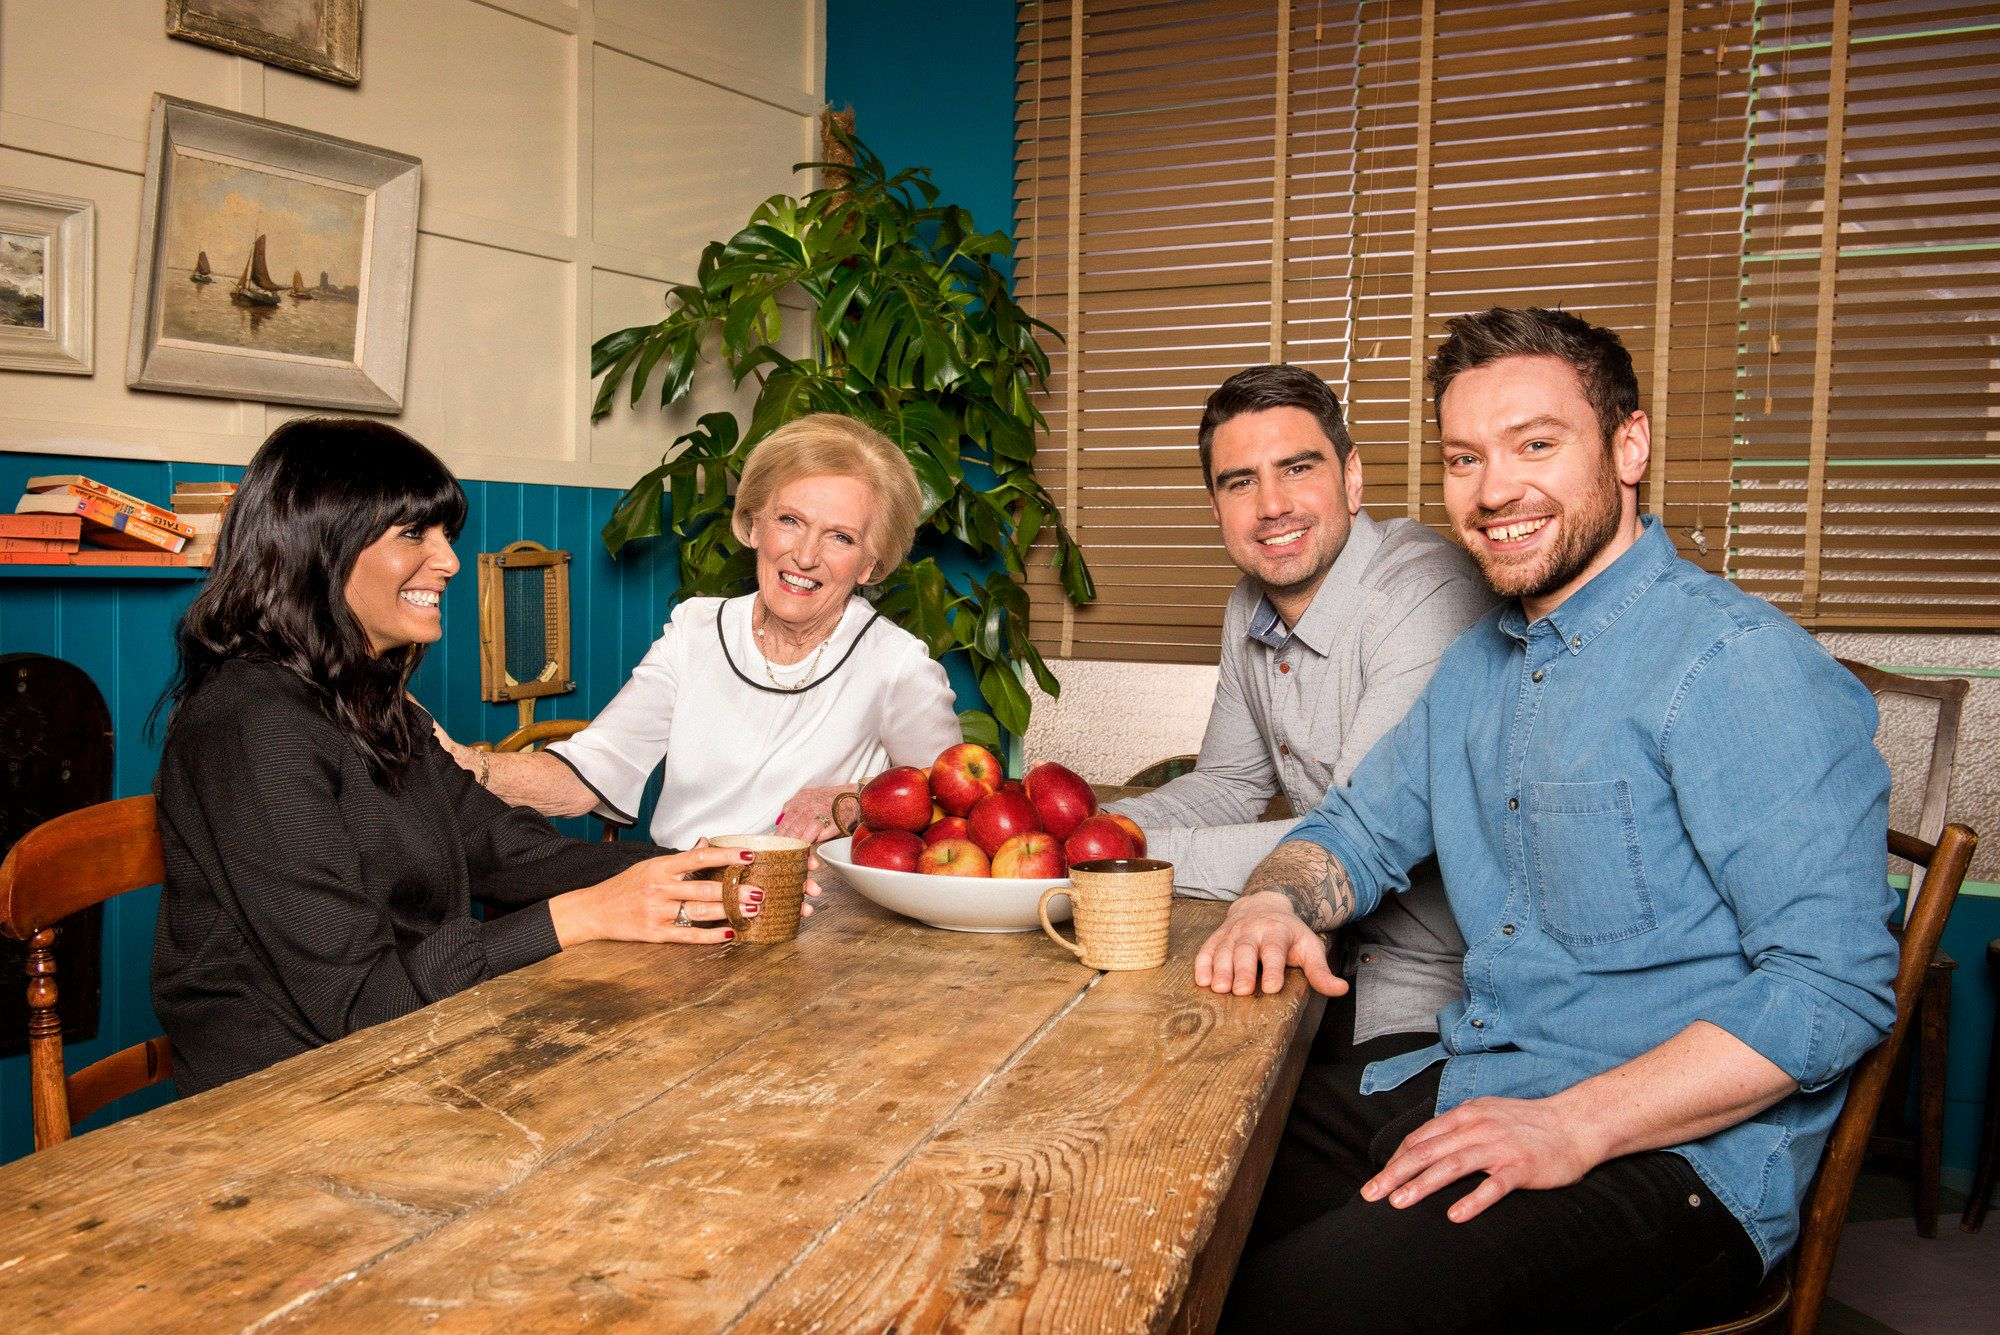 Mary Berry's New Co-Star Dan Doherty Apologises After Anti-Gay Slurs Are Found On Twitter